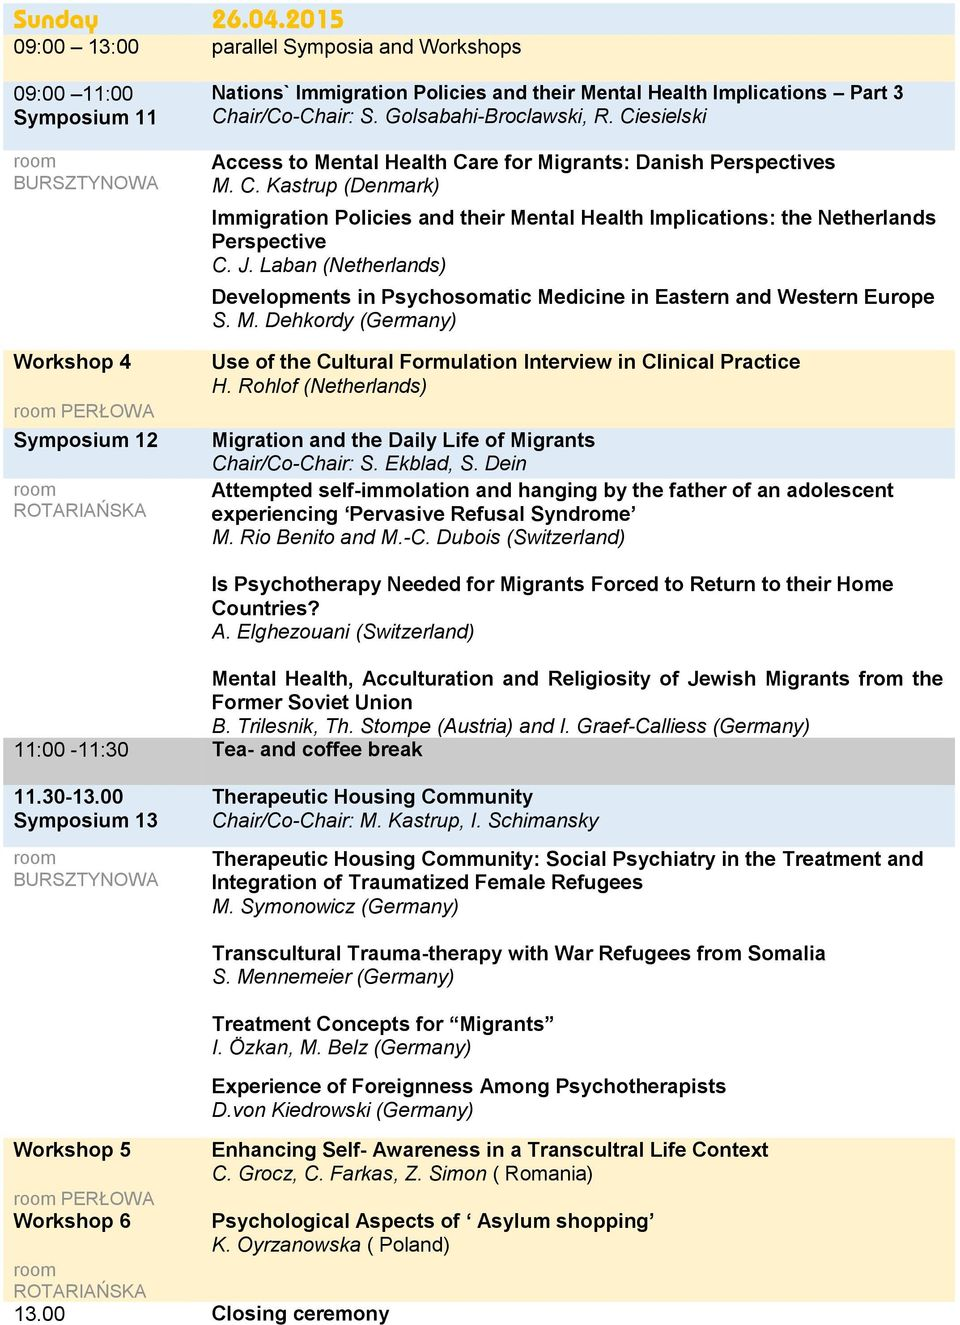 Chair/Co-Chair: S. Golsabahi-Broclawski, R. Ciesielski Access to Mental Health Care for Migrants: Danish Perspectives M. C. Kastrup (Denmark) Immigration Policies and their Mental Health Implications: the Netherlands Perspective C.